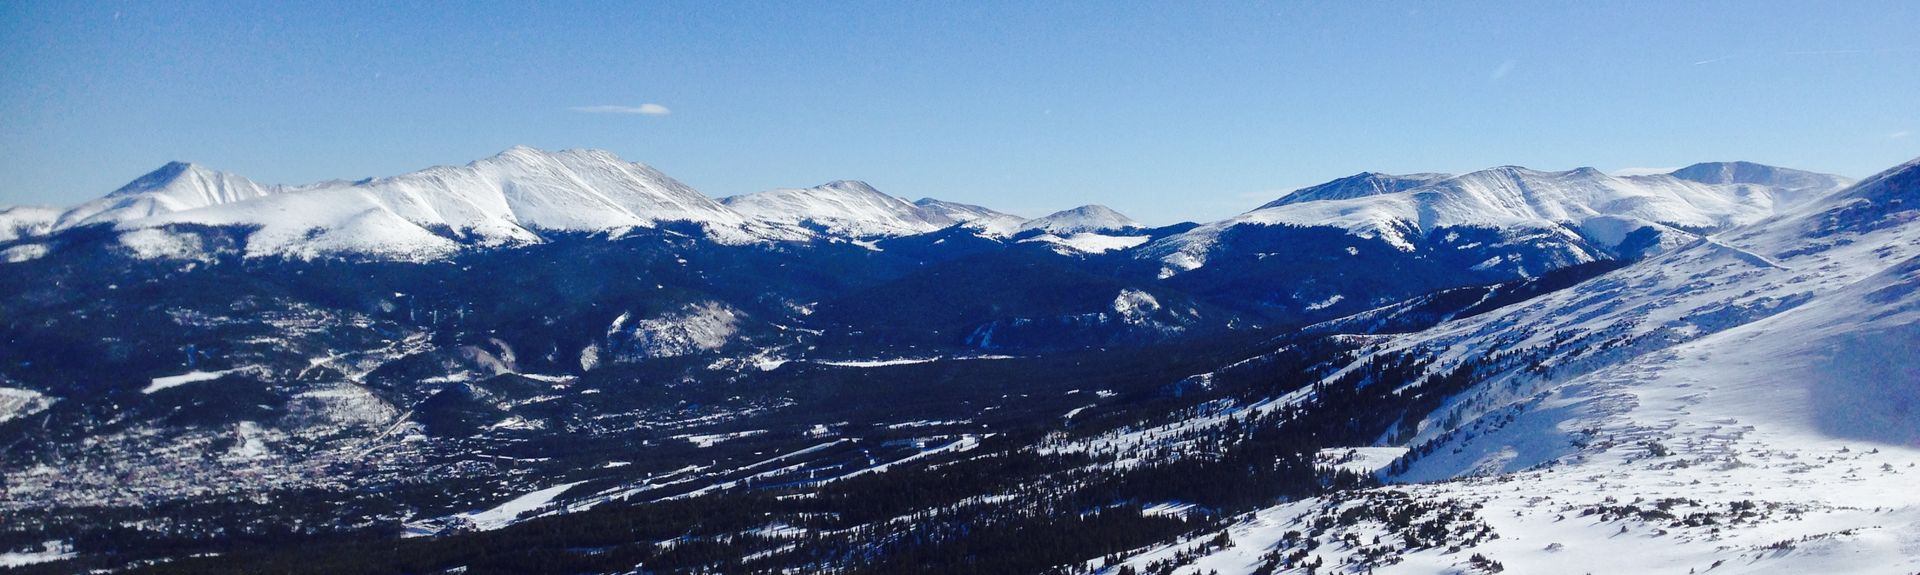 Park Place, Breckenridge, CO, USA